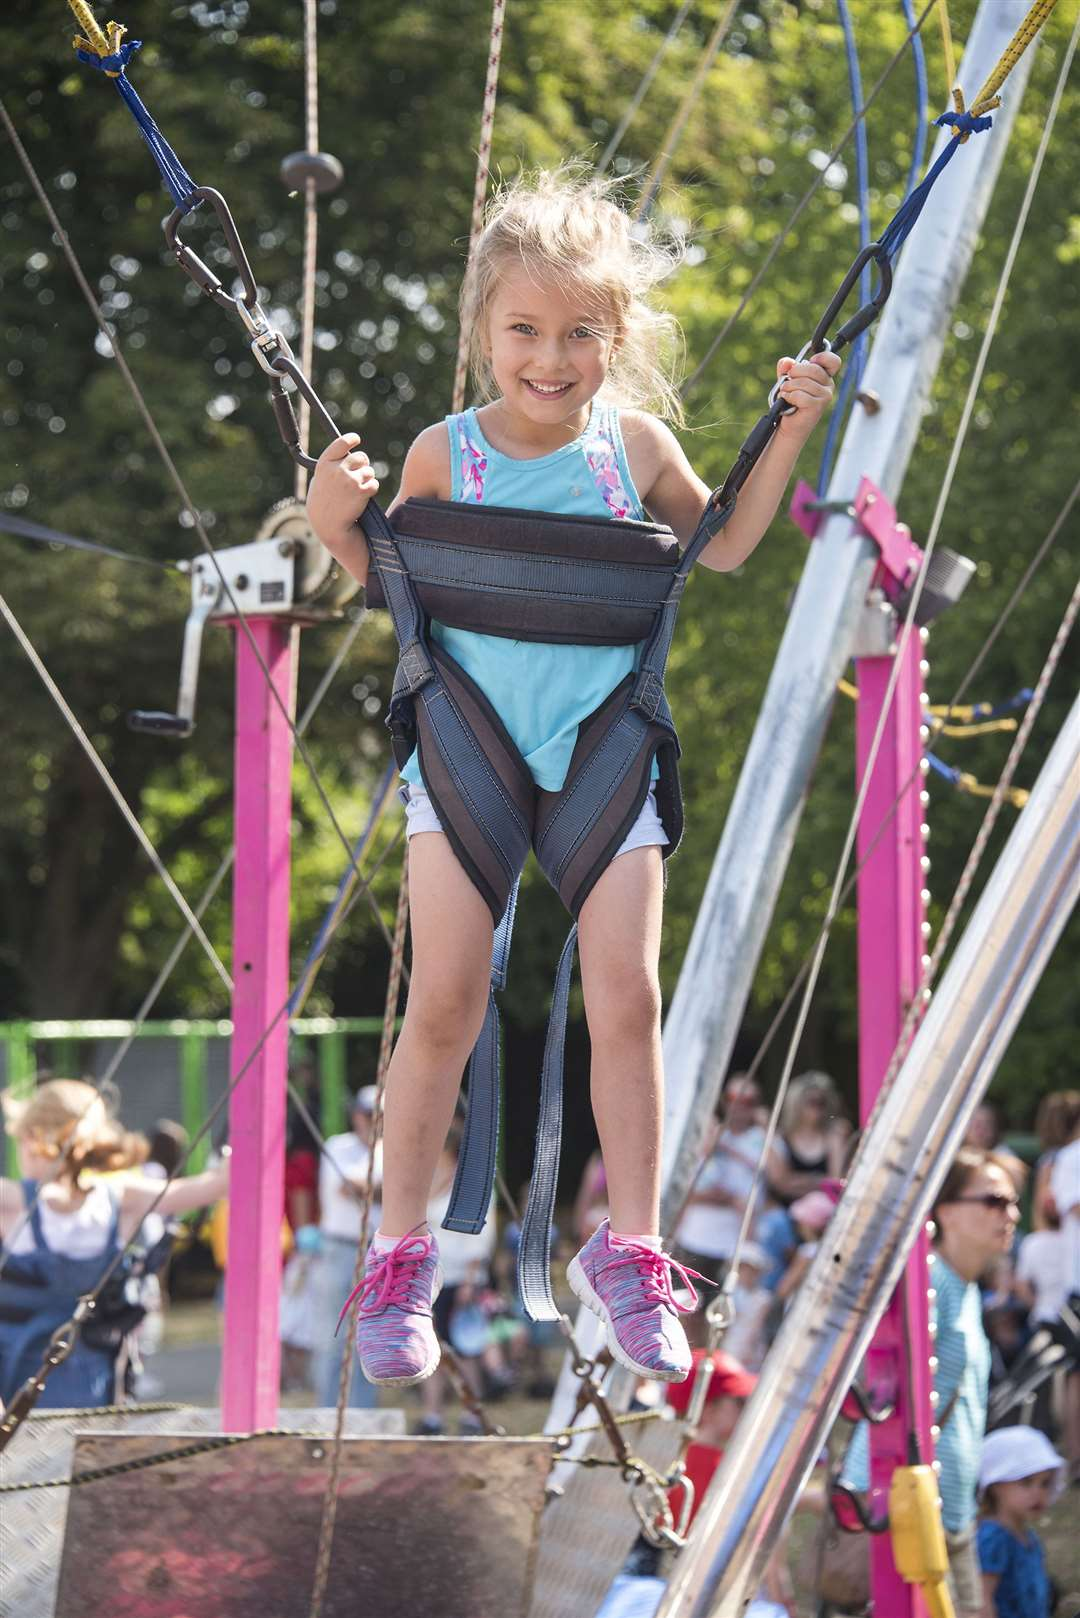 Five-year-old Indie Thompson enjoying a bungee trampoline at last year's Big Day Out. Picture by Mark Westley